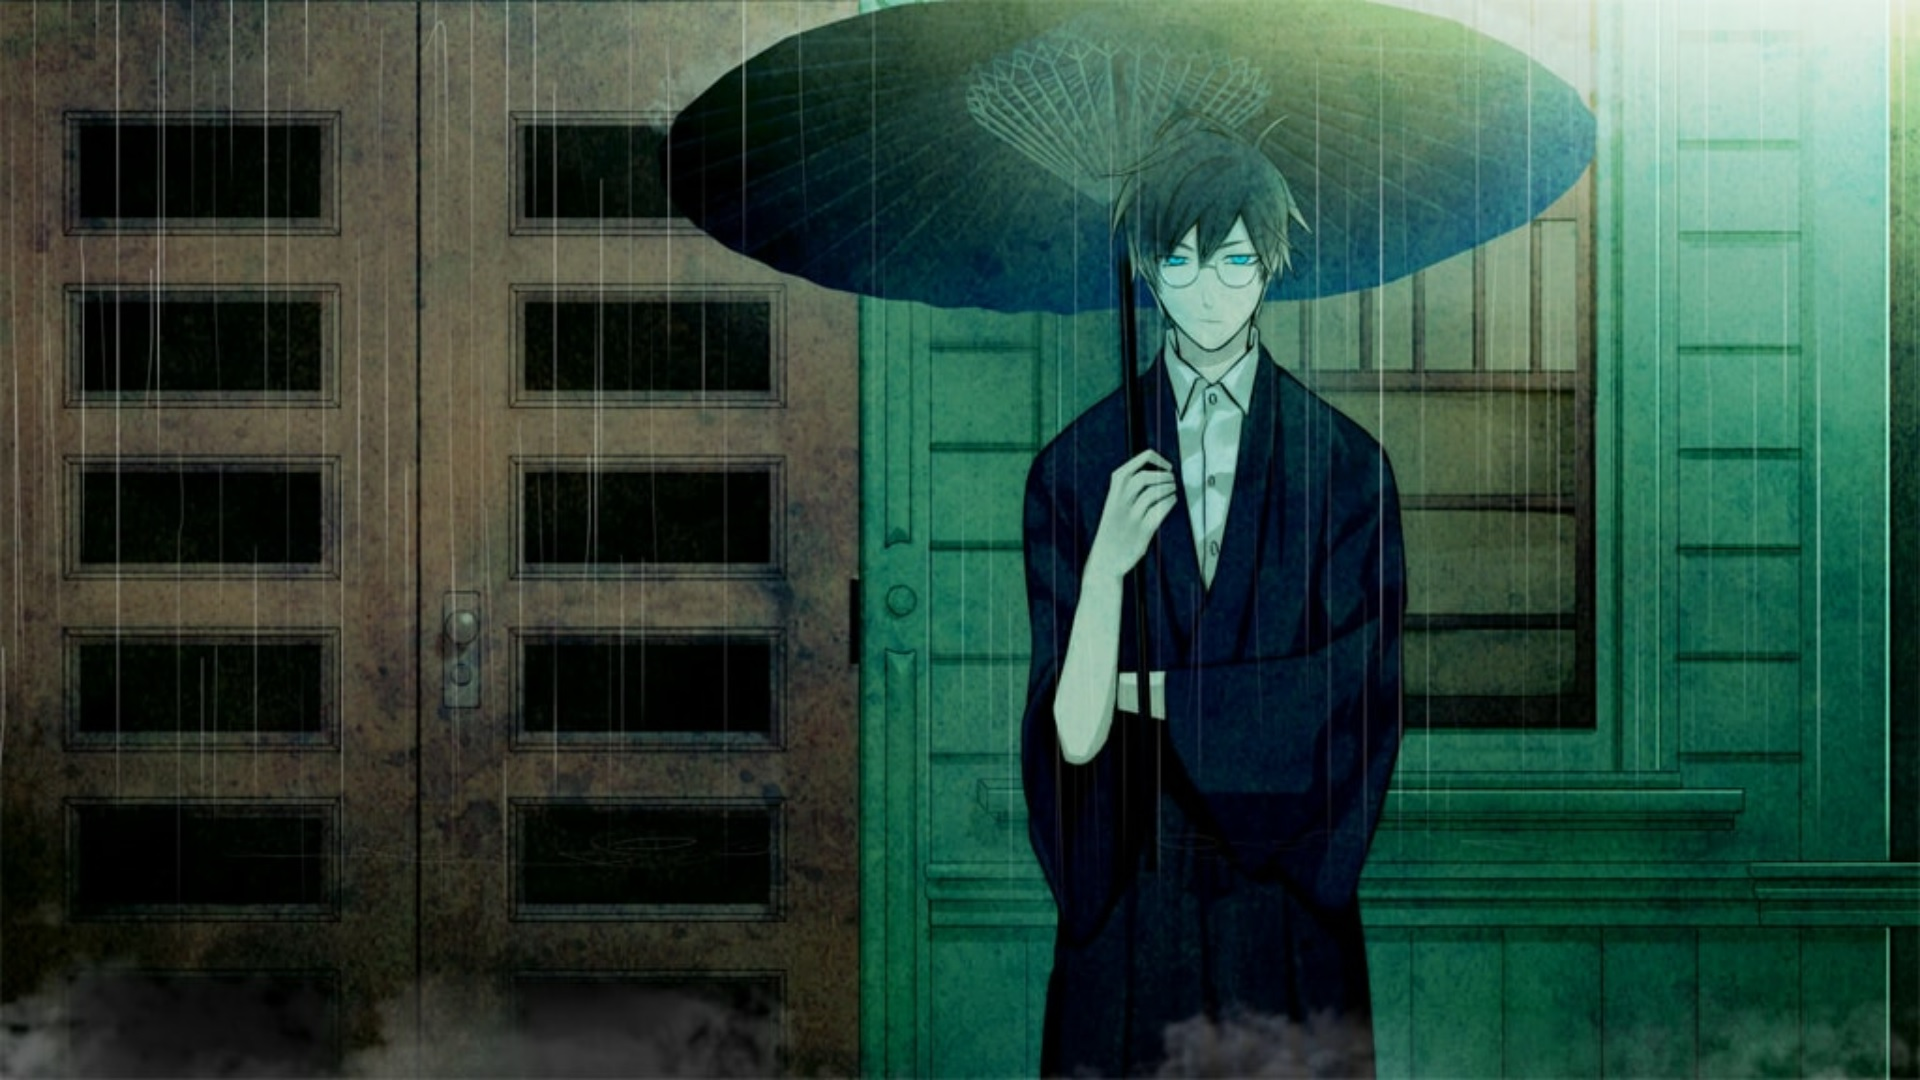 Escapism in Old Book Town: Tamamori holding an umbrella in the rain.